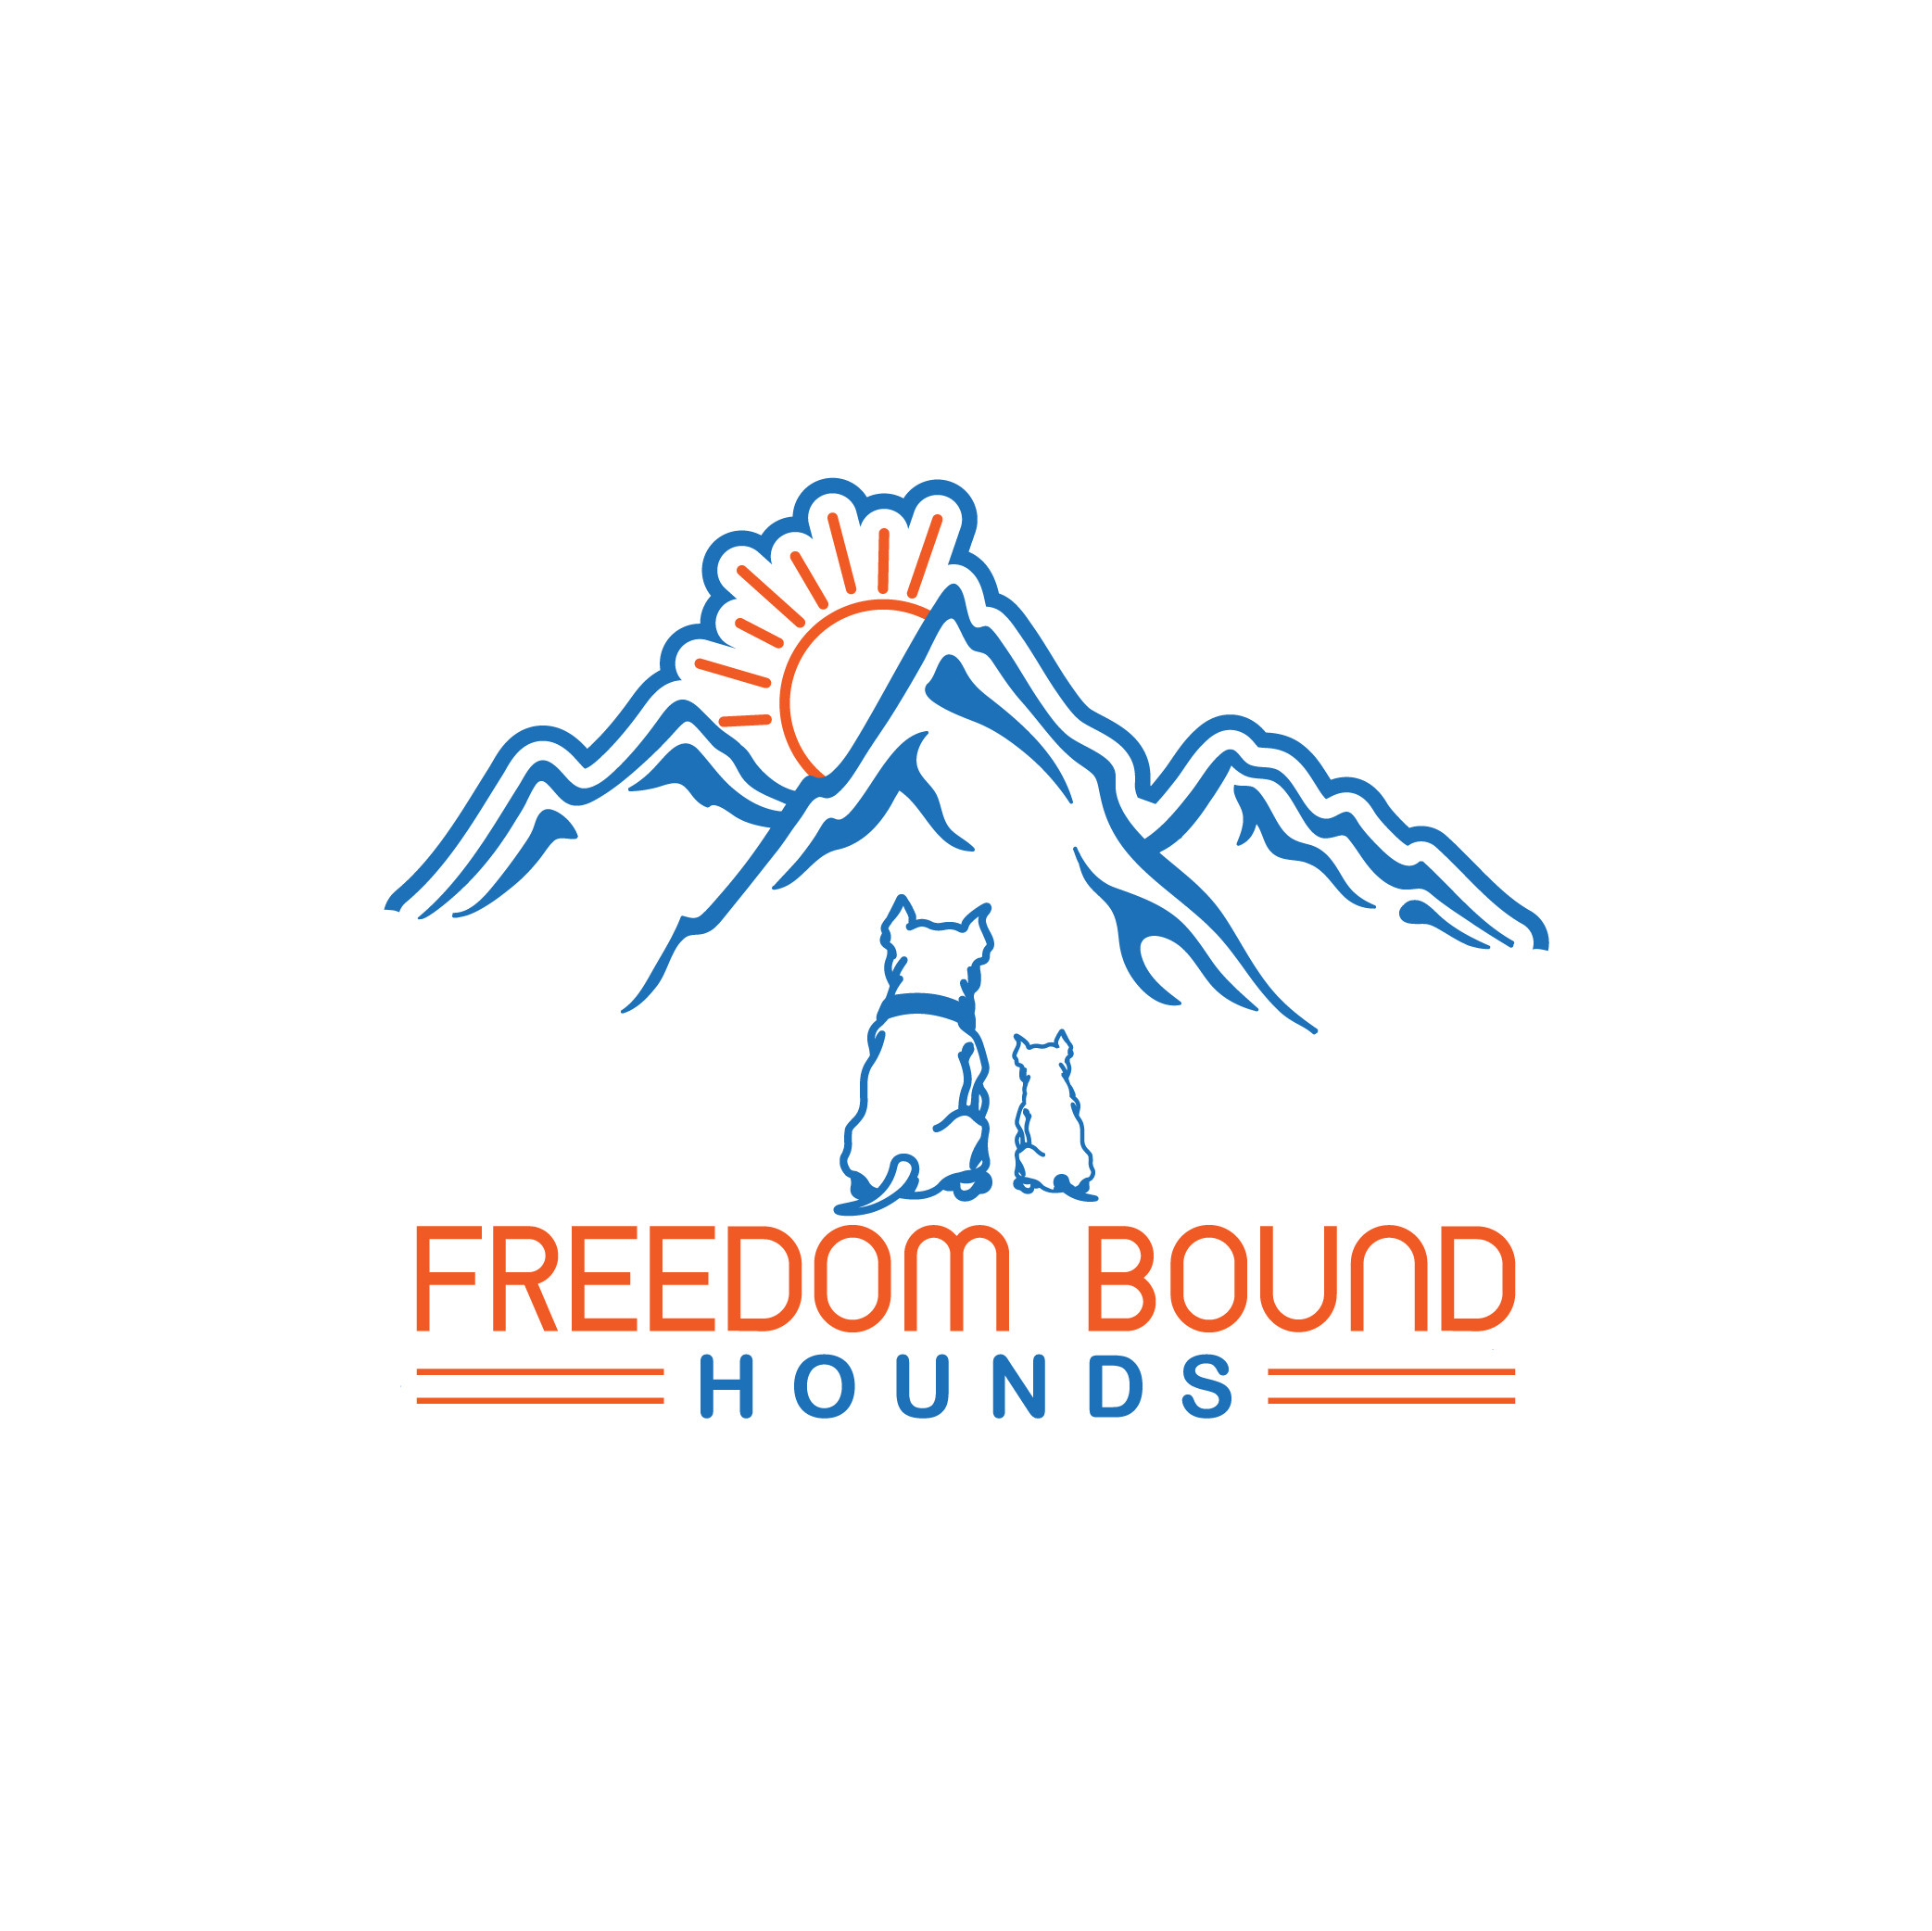 Pets For Adoption At Freedom Bound Hounds, In Boise, ID